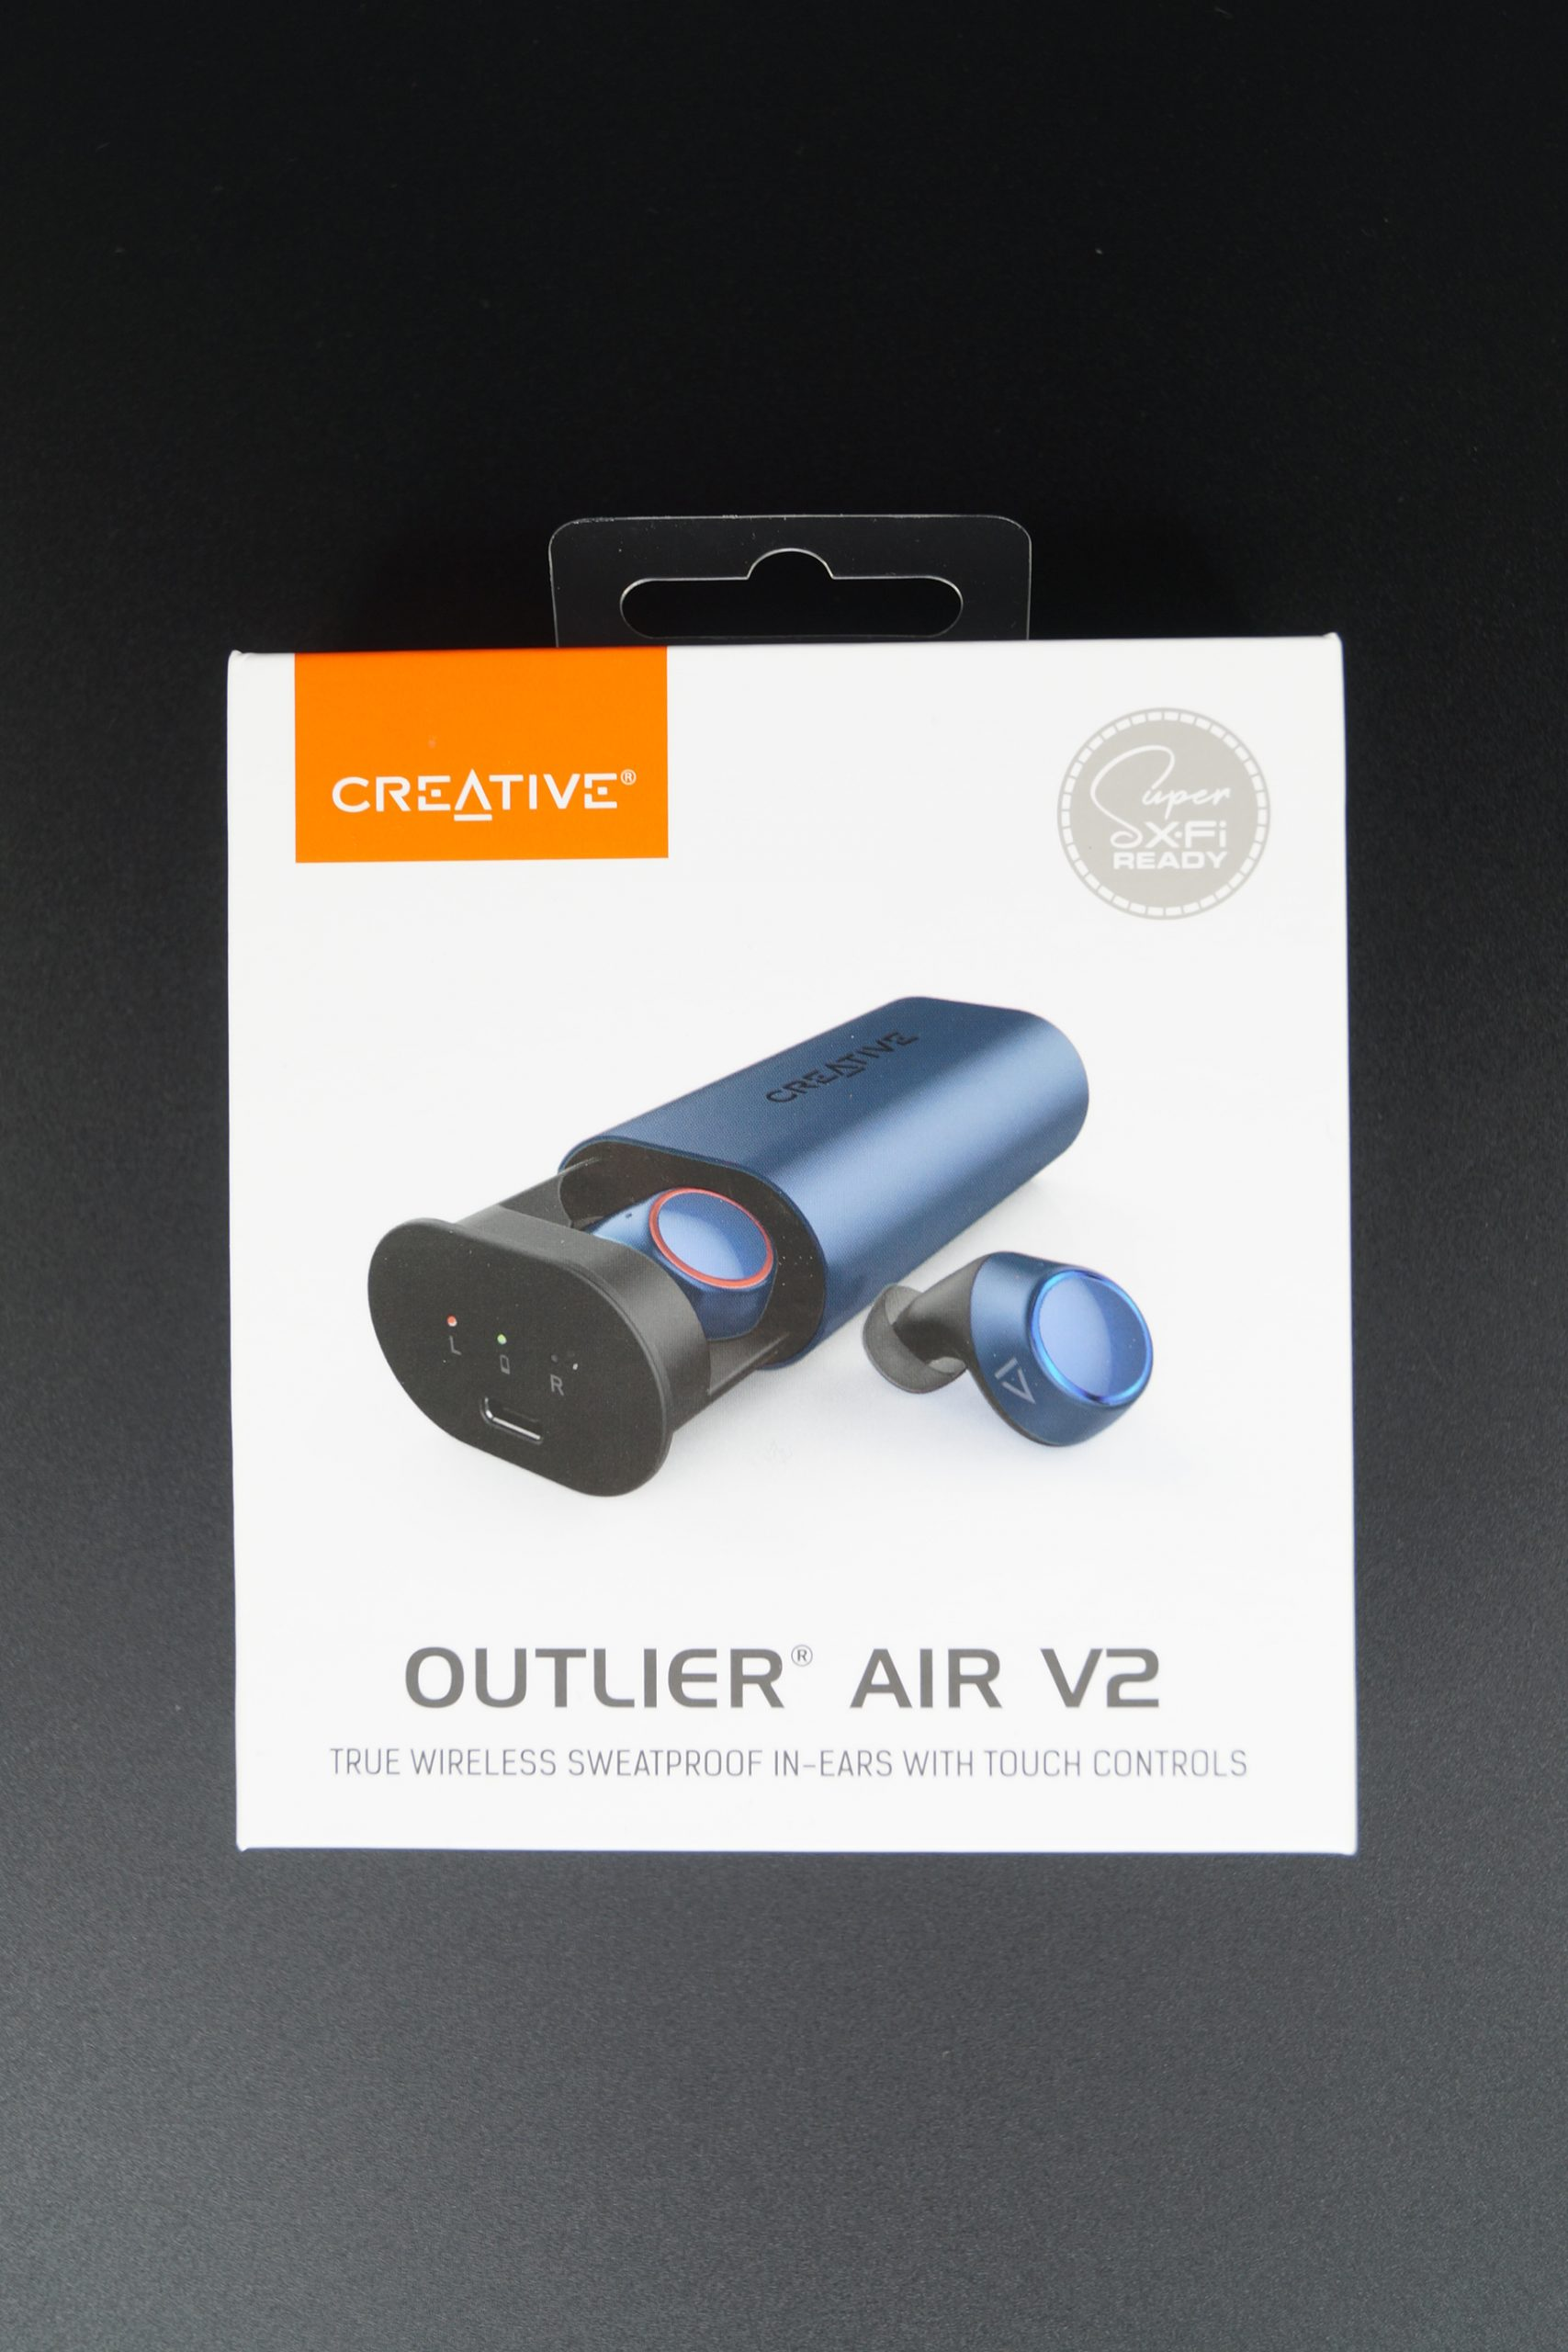 Creative Outlier Air V2 Verpackung